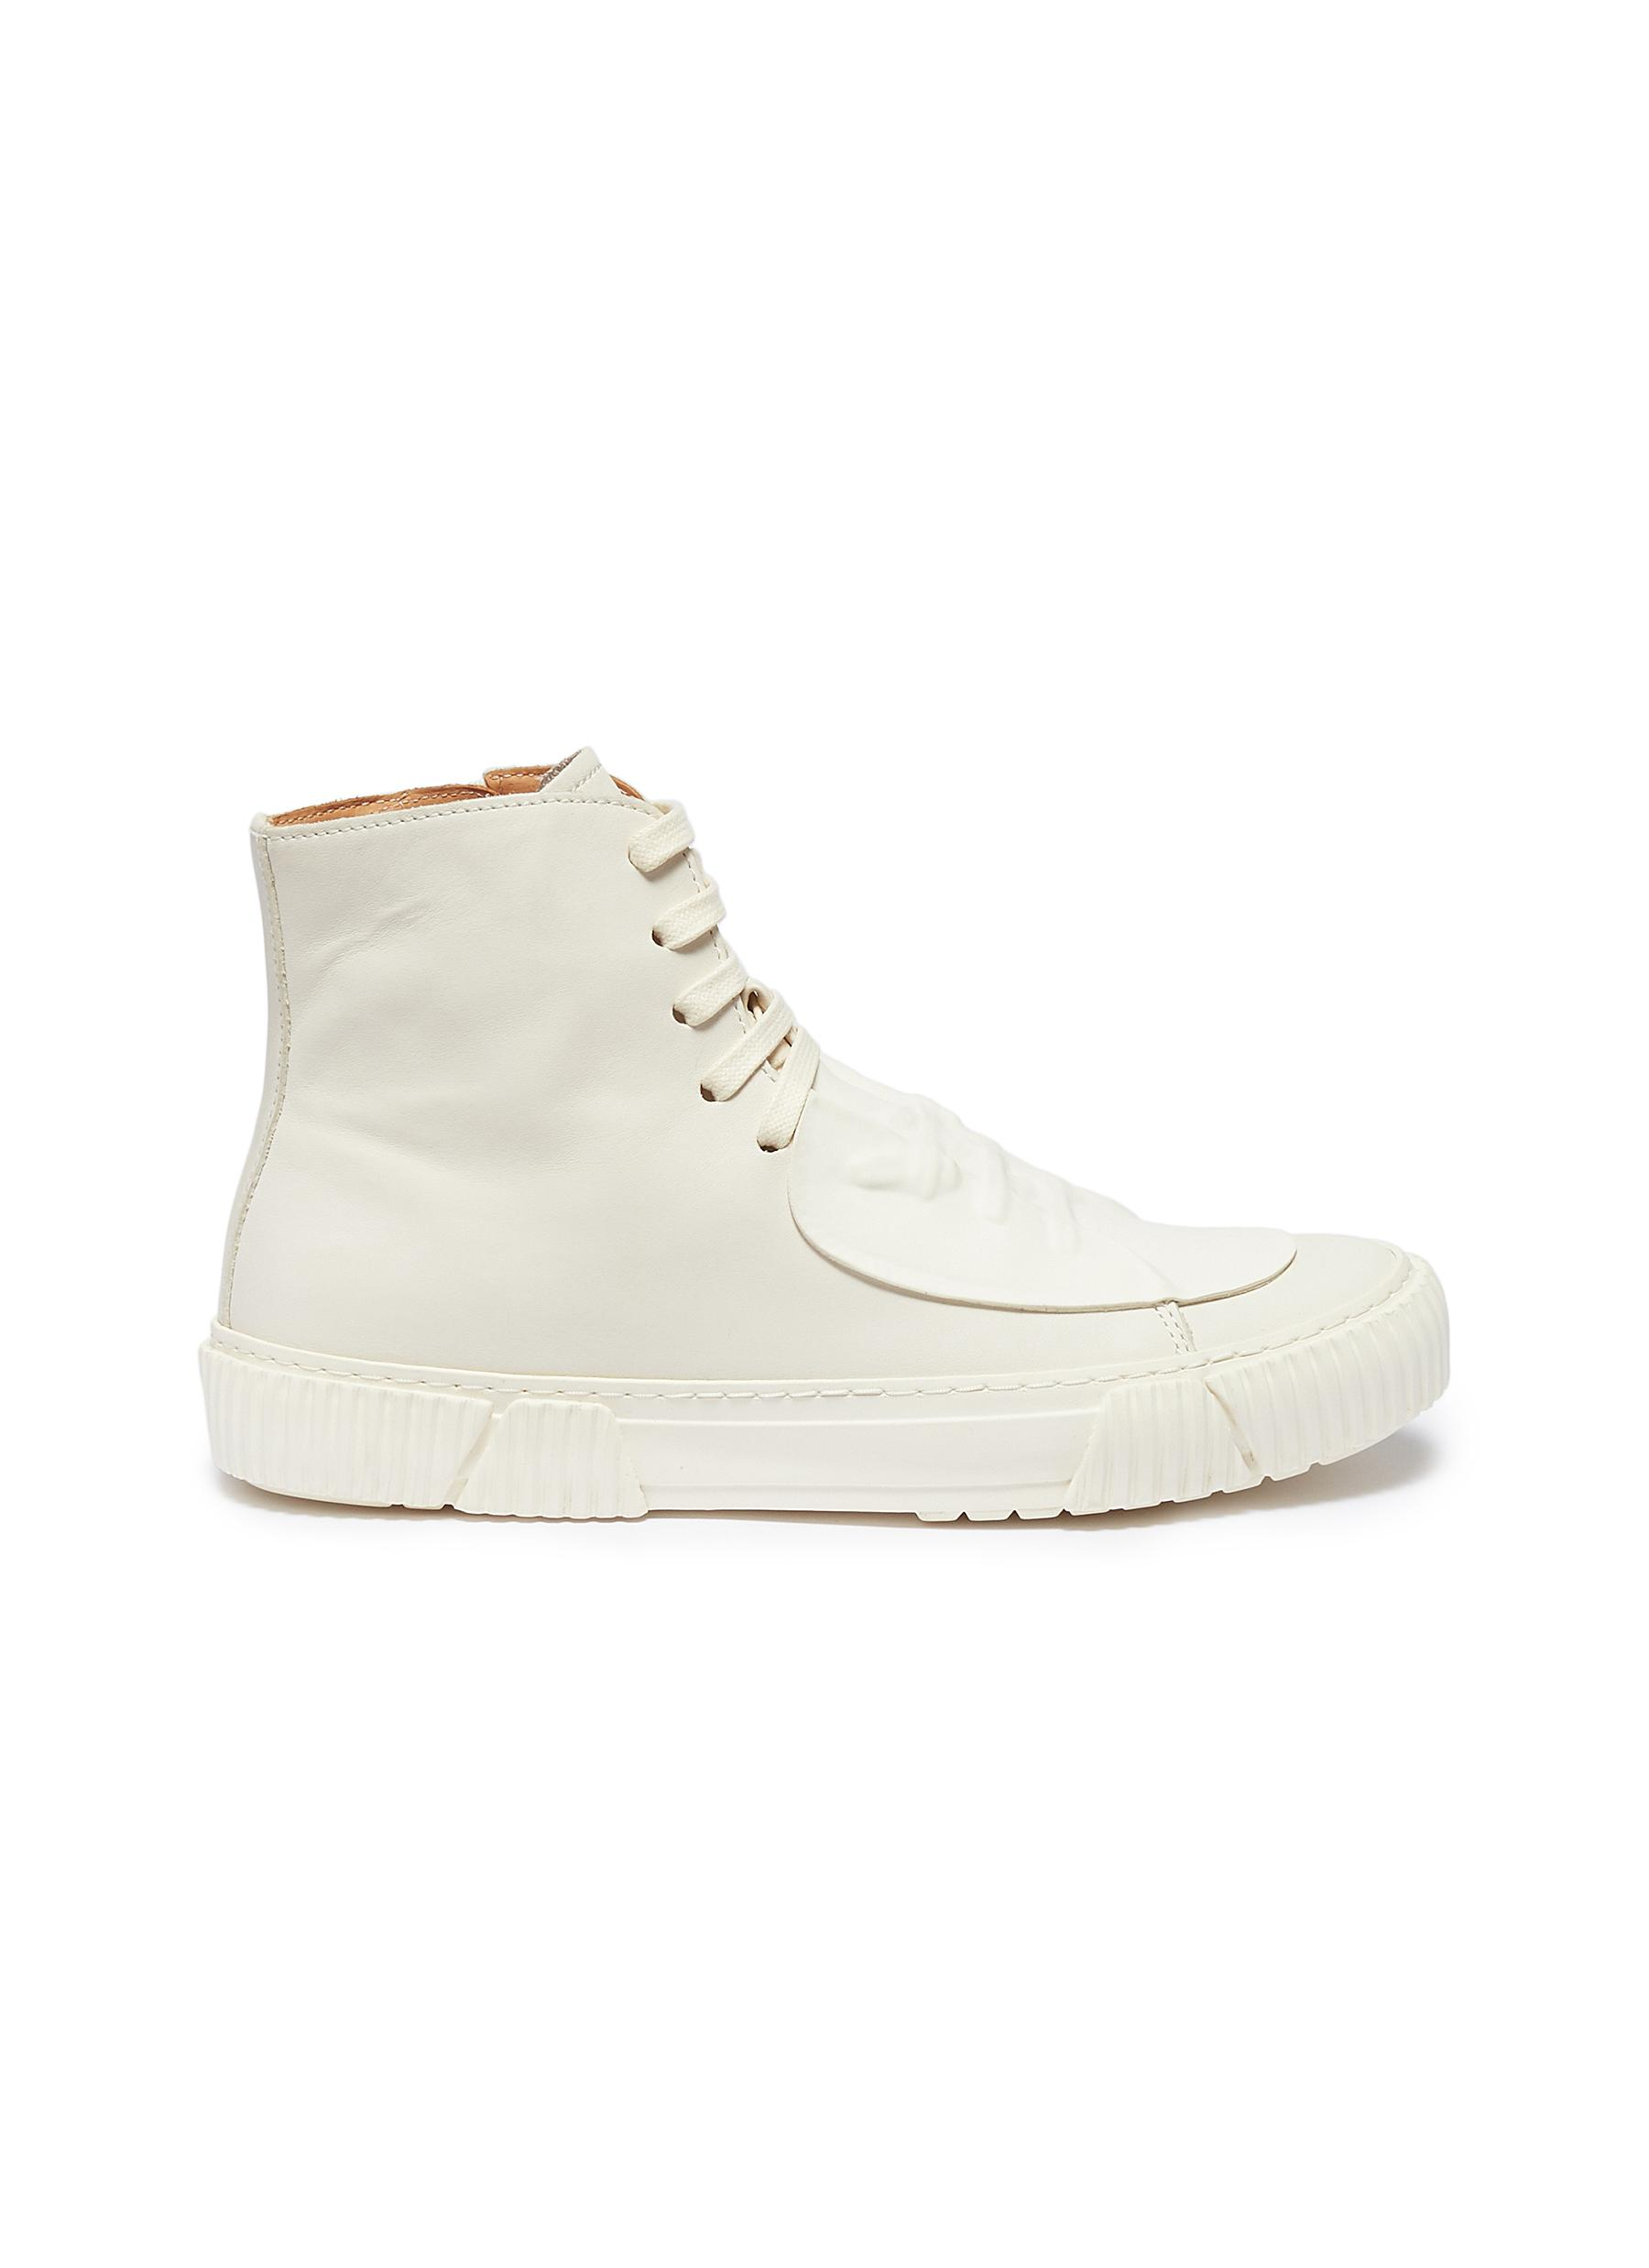 Rubber patch leather high top sneakers by both